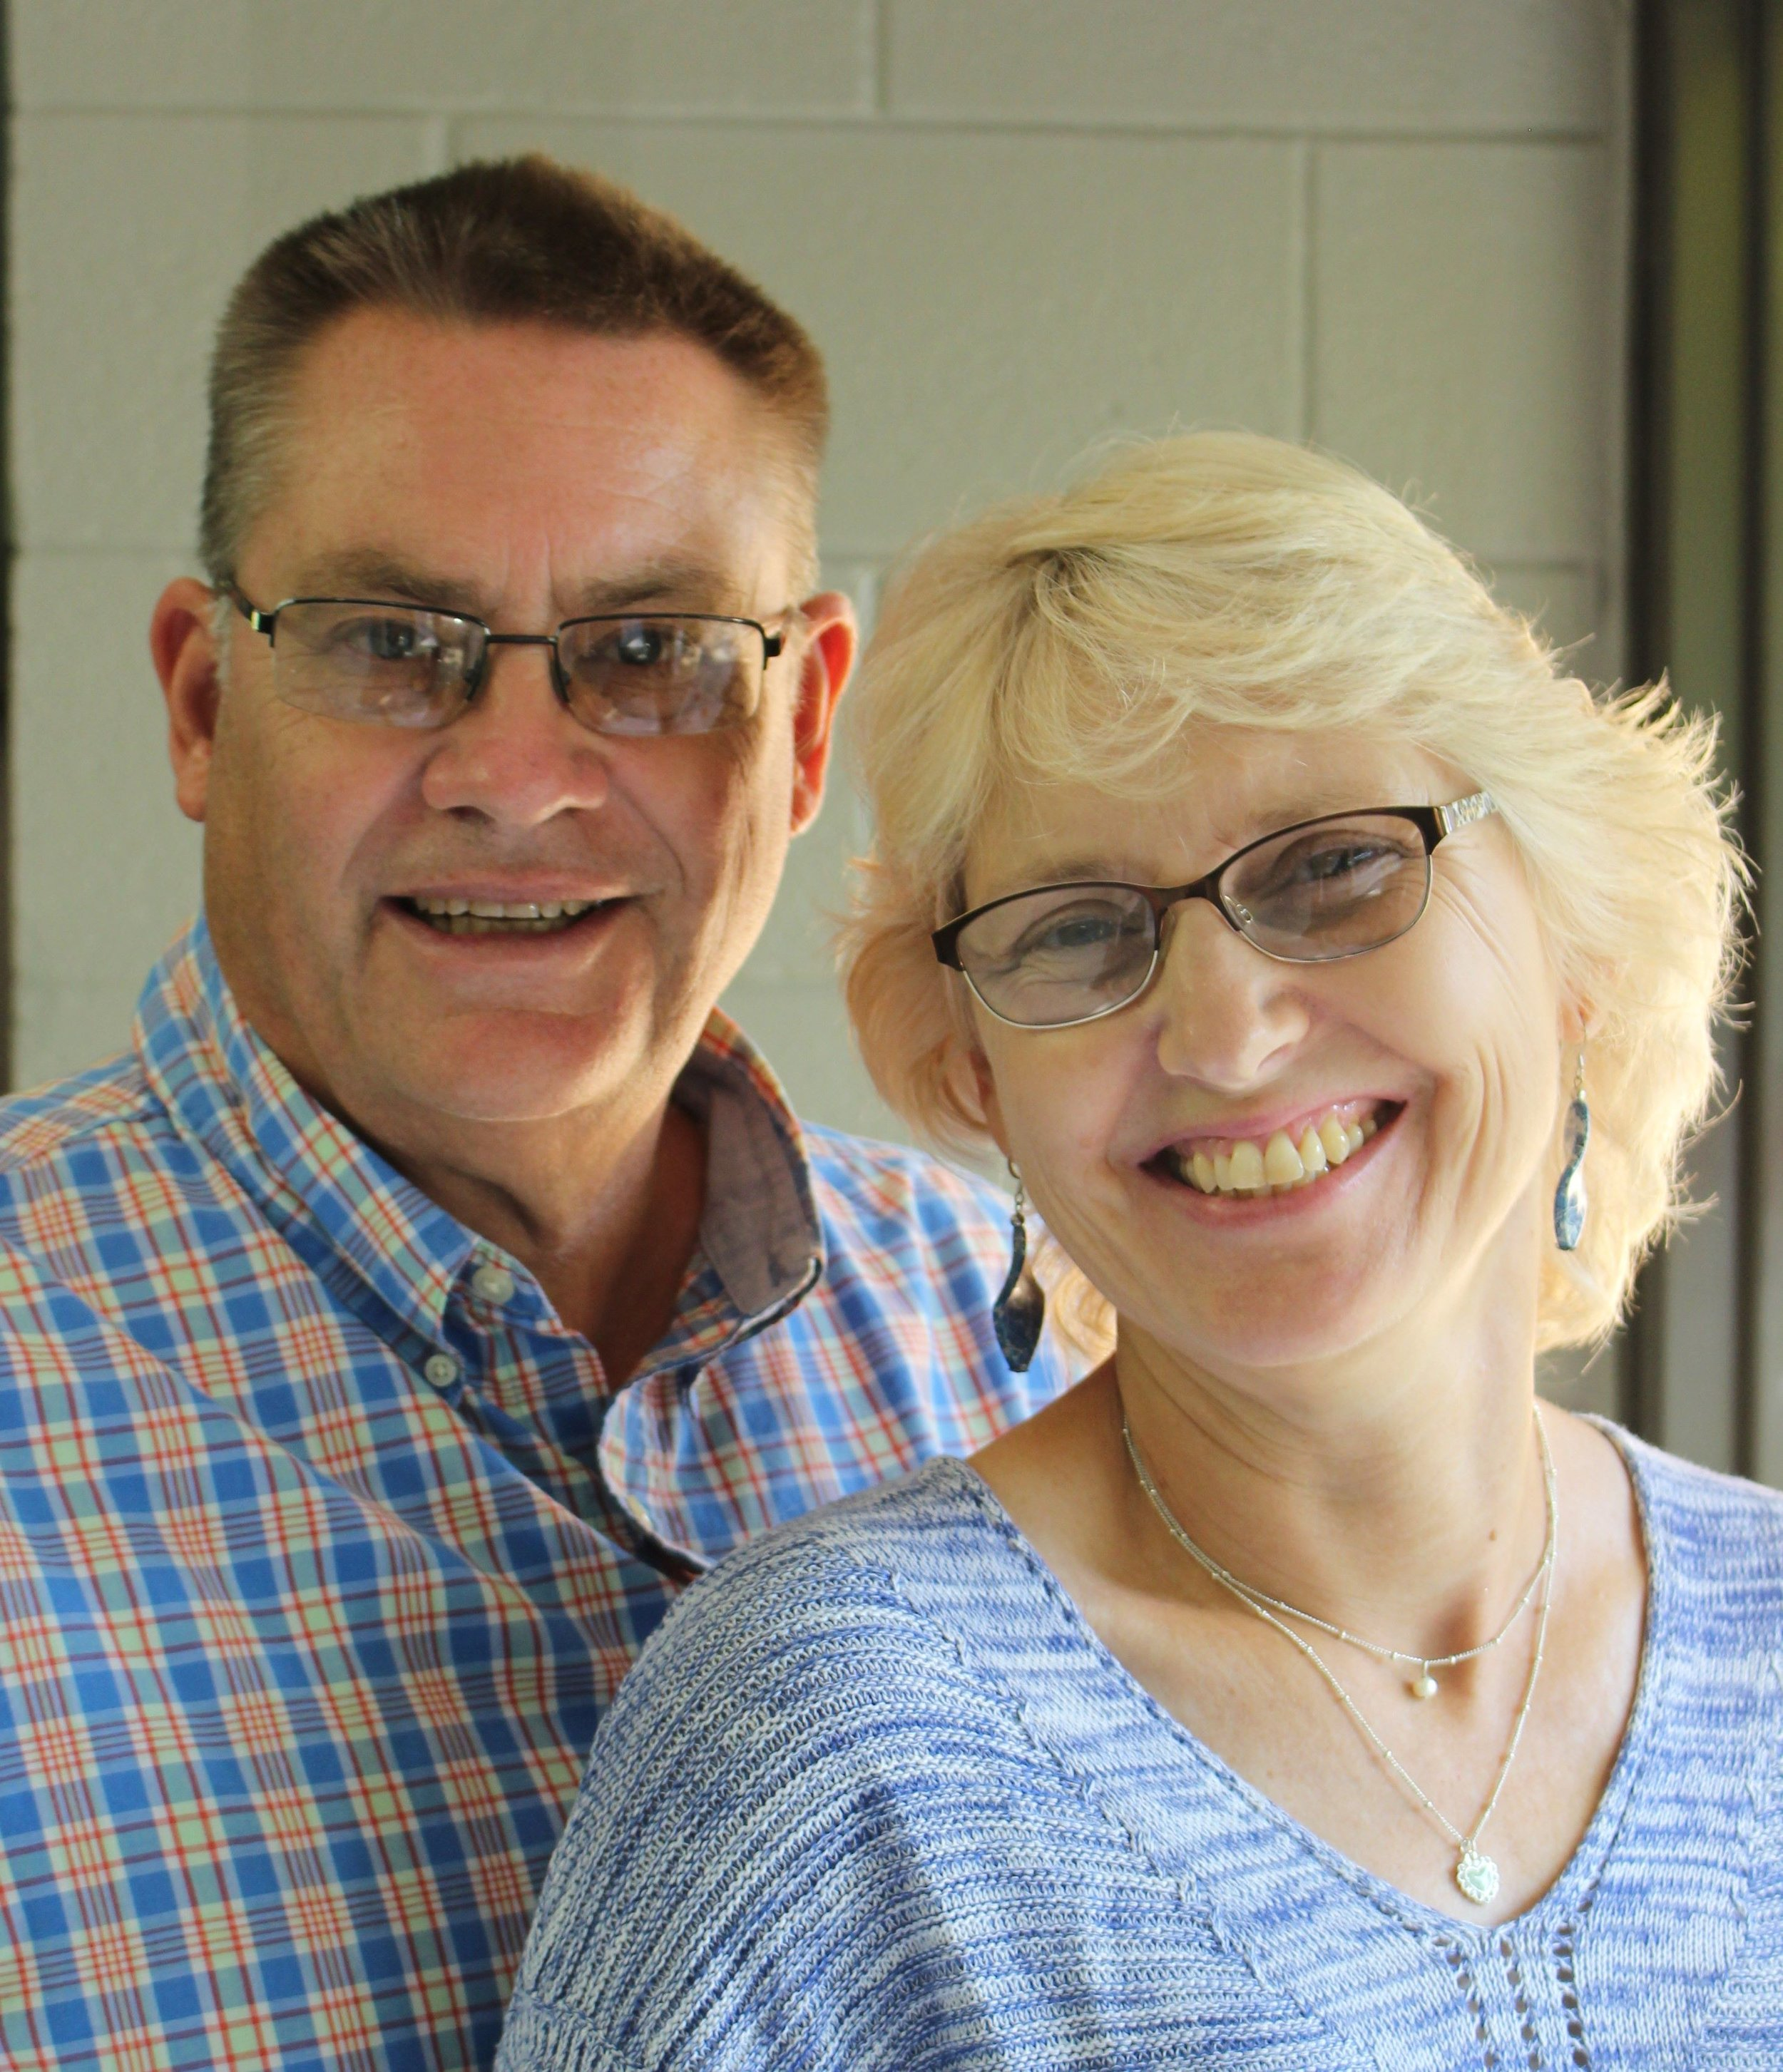 Kevin and Sue Prins - Kevin and Sue Prins work with Excelling Leaders in Grand  Rapids , MI.  Excelling  Leaders exists to encourage and empower missionaries and their families through coaching, debriefing and equipping, so they can be more effective and resilient in sharing the love of Jesus.